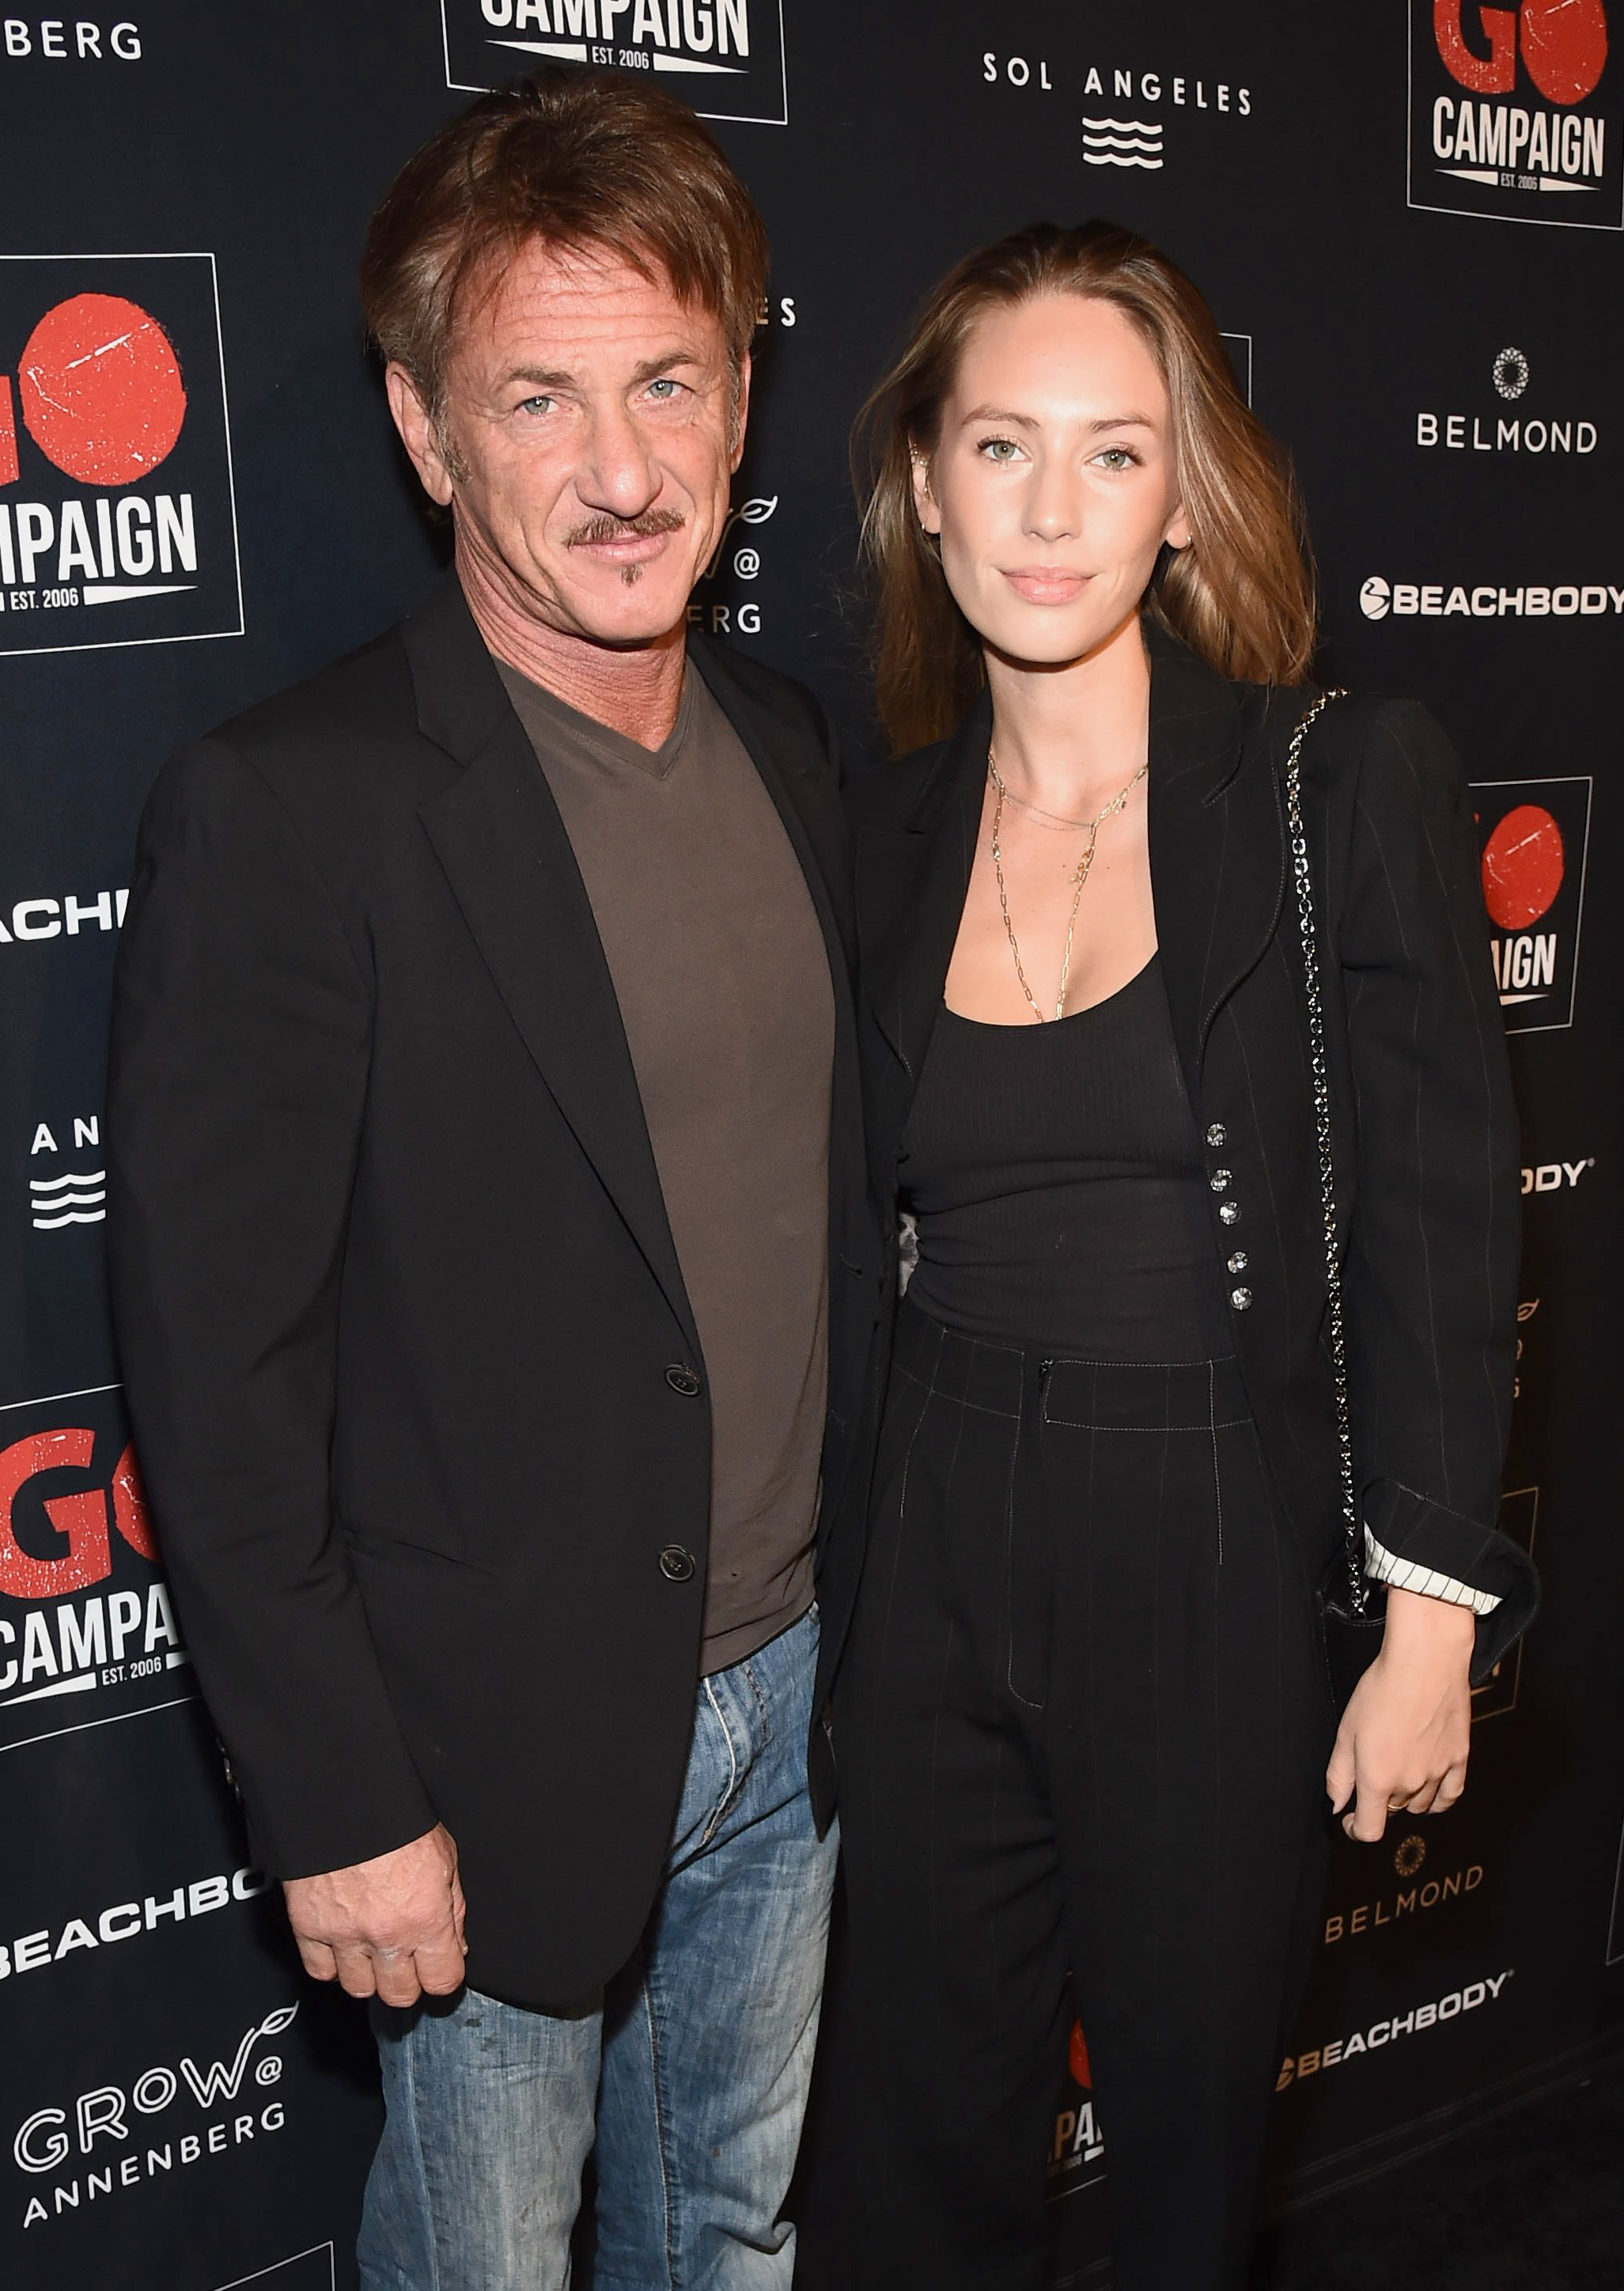 Sean Penn and Dylan Penn attend the GO Campaign 2018 Gala in Los Angeles on Oct. 20, 2018.